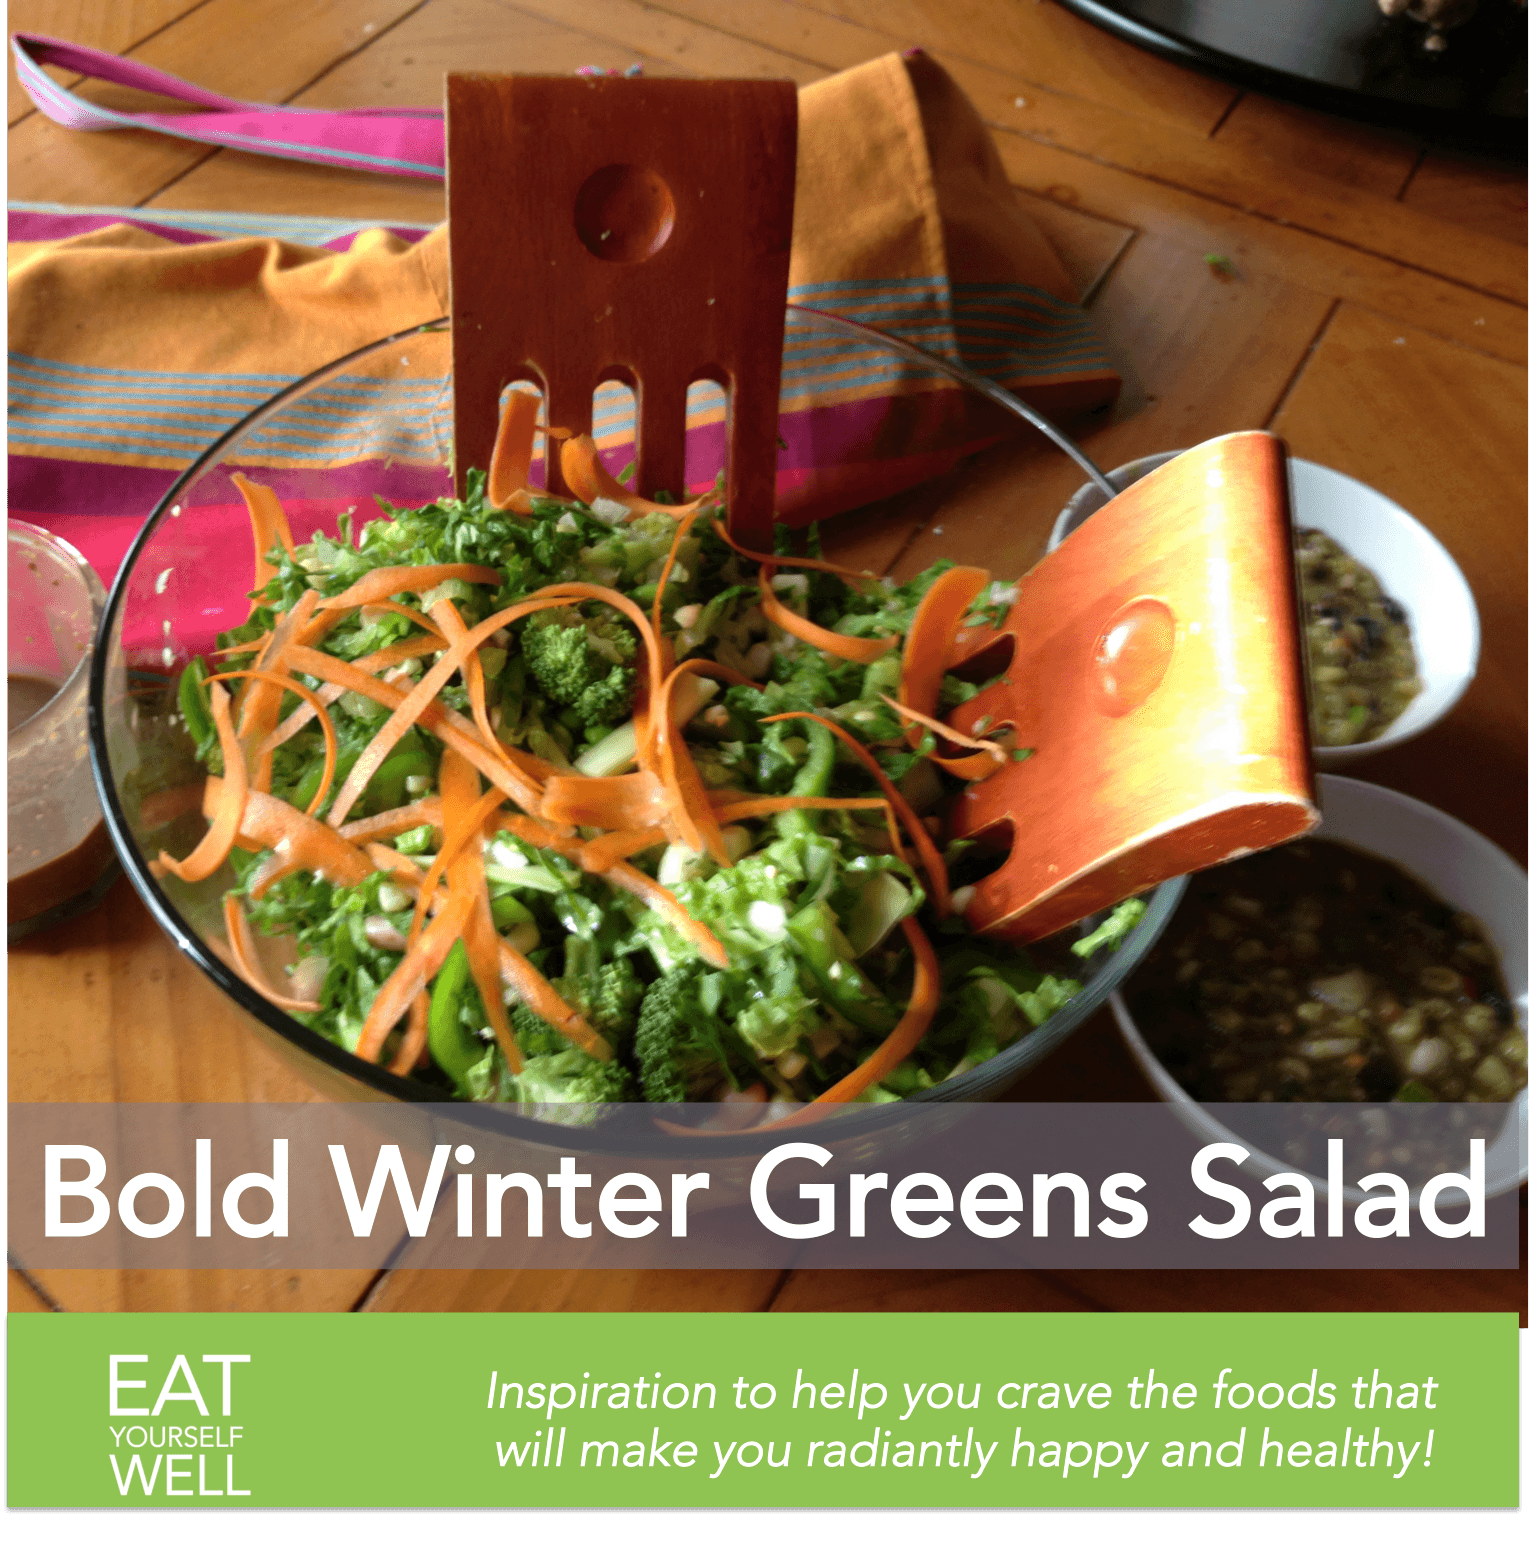 Bold Winter Greens Salad